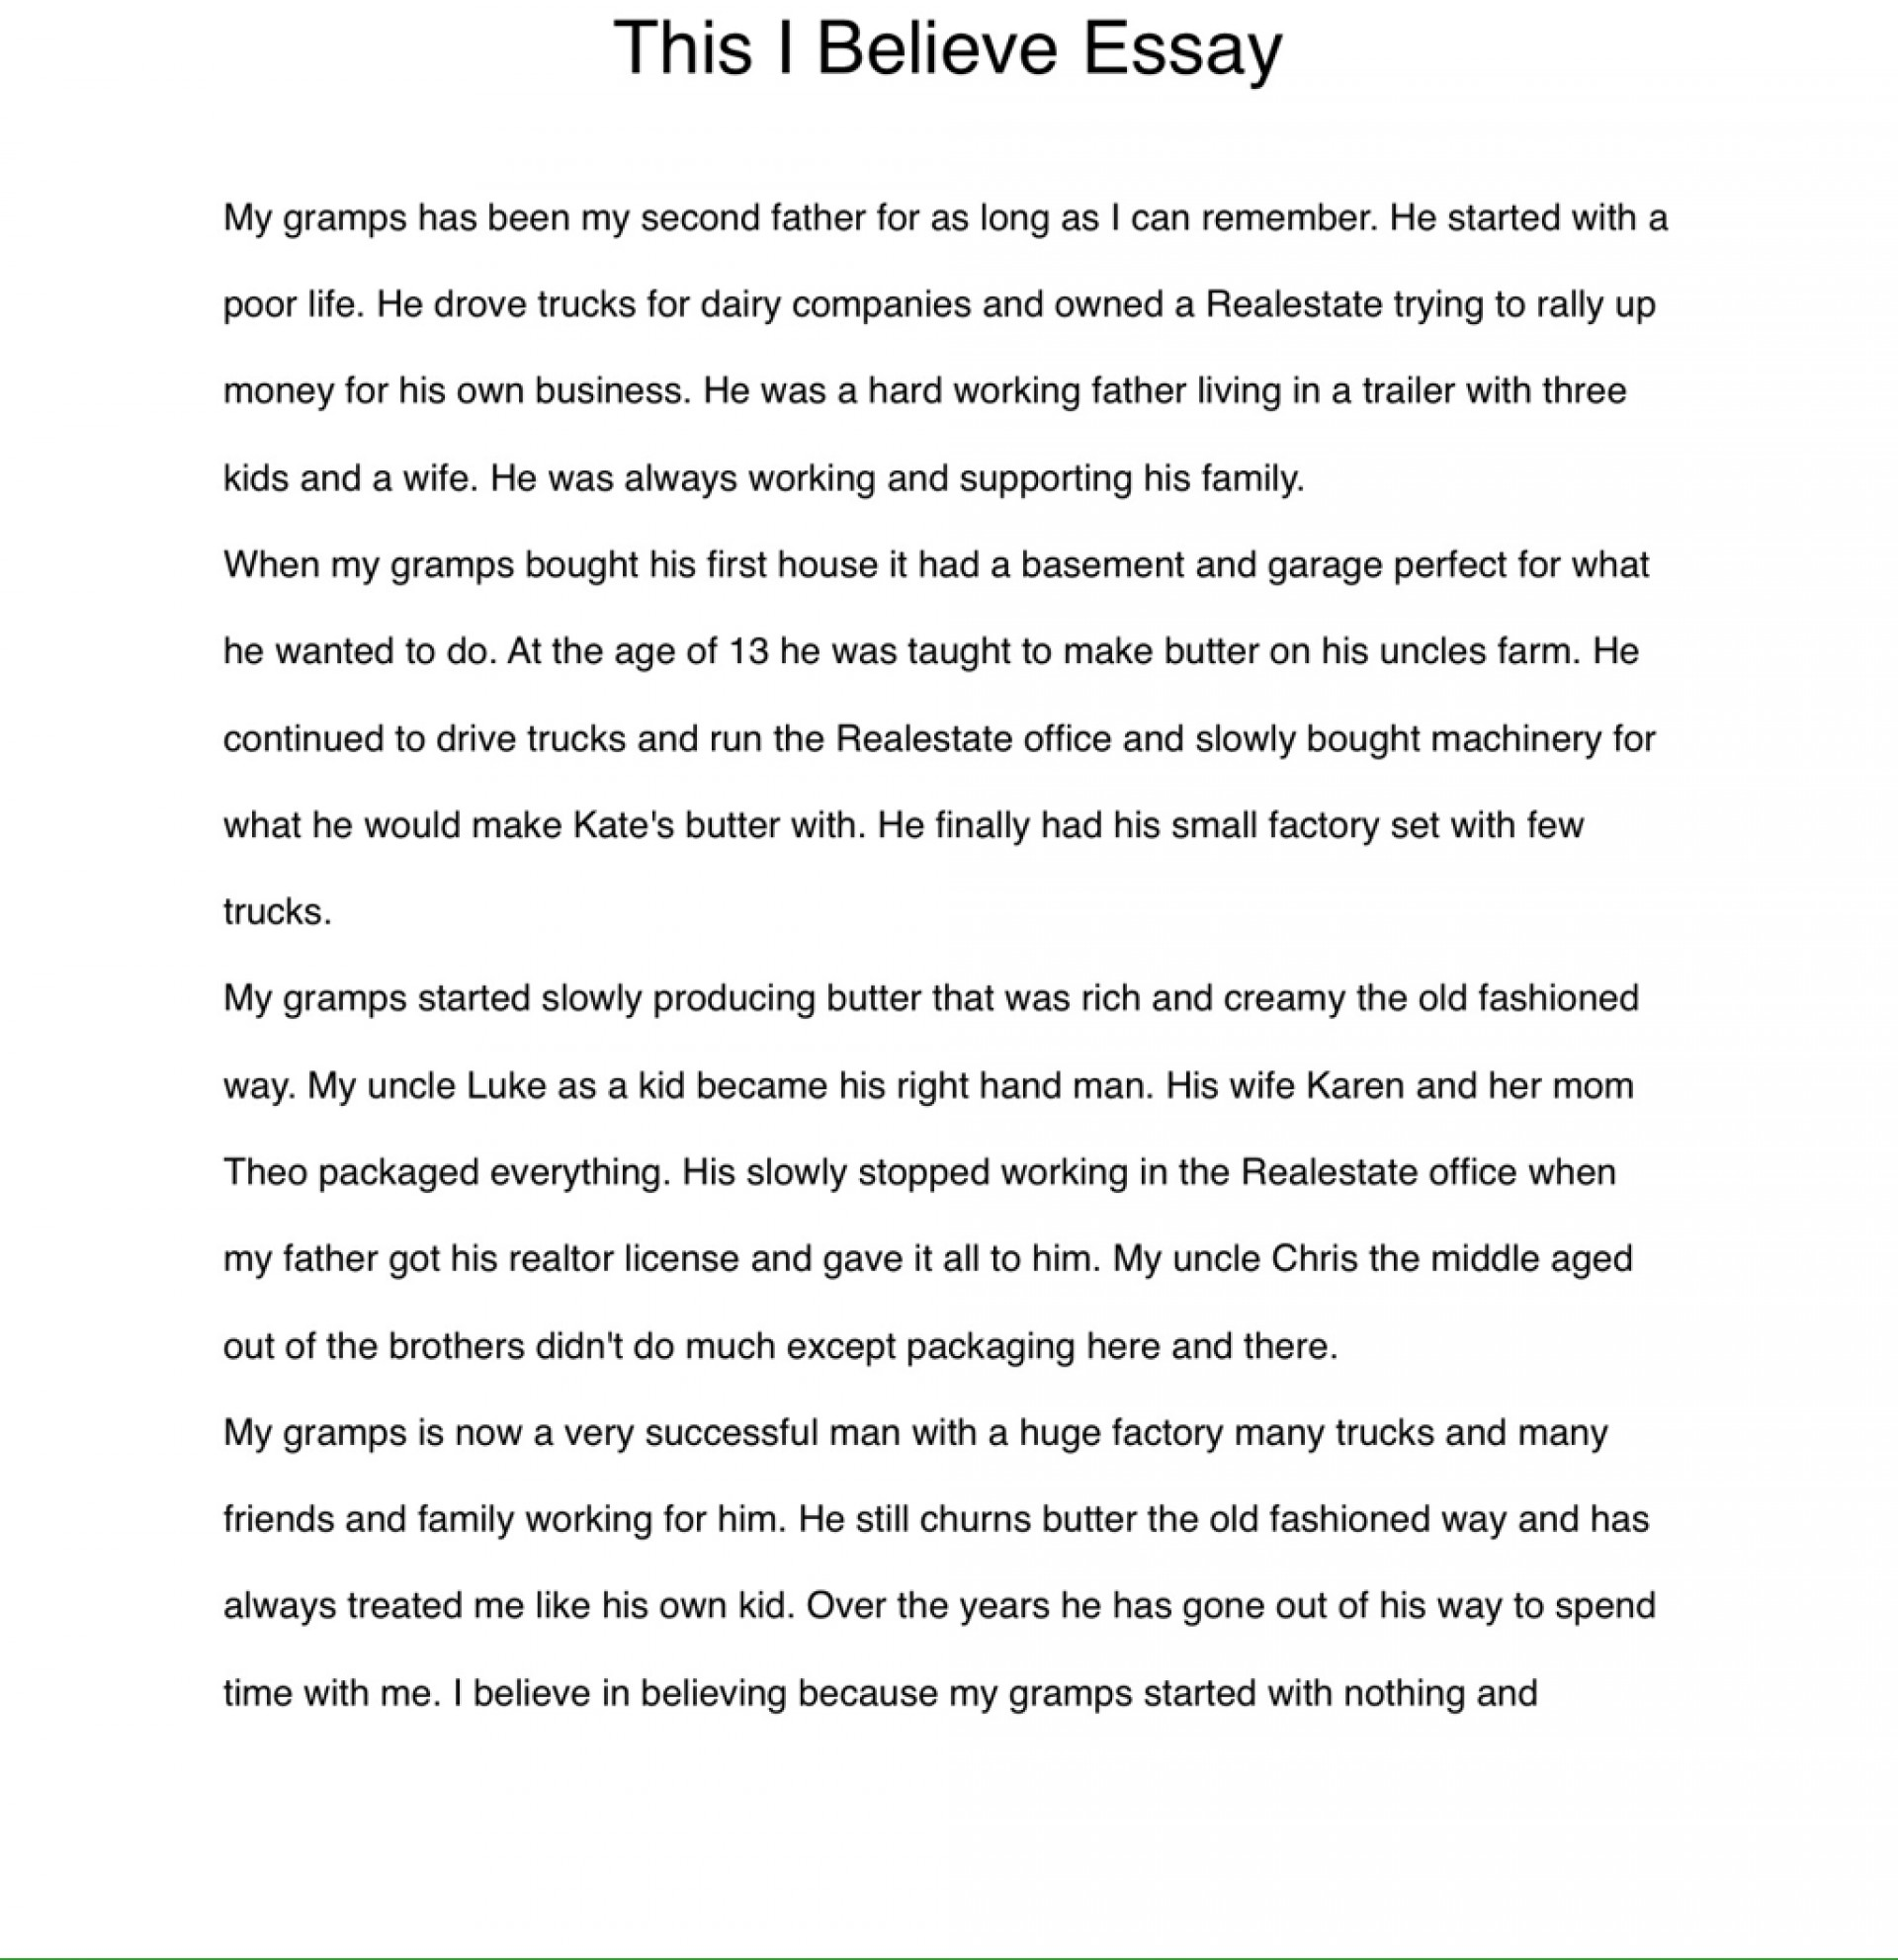 003 Essay Example I Believe Examples Phenomenal This Personal College 1920